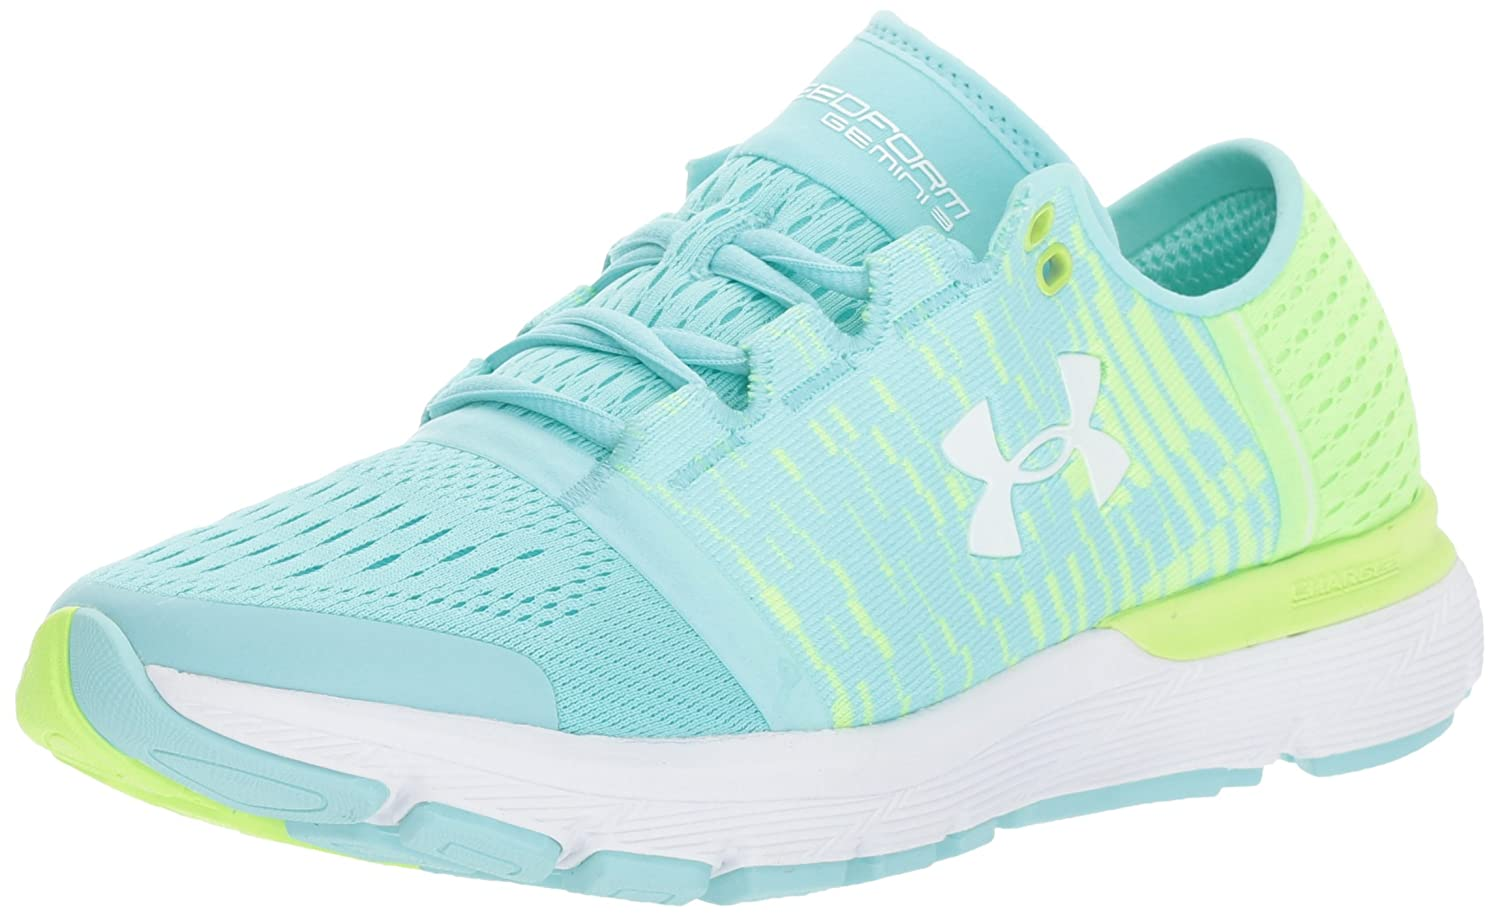 Under Armour Women's Speedform Gemini 3 Graphic Running Shoe B01MYY44DL 8.5 M US|Blue Infinity (301)/Quirky Lime